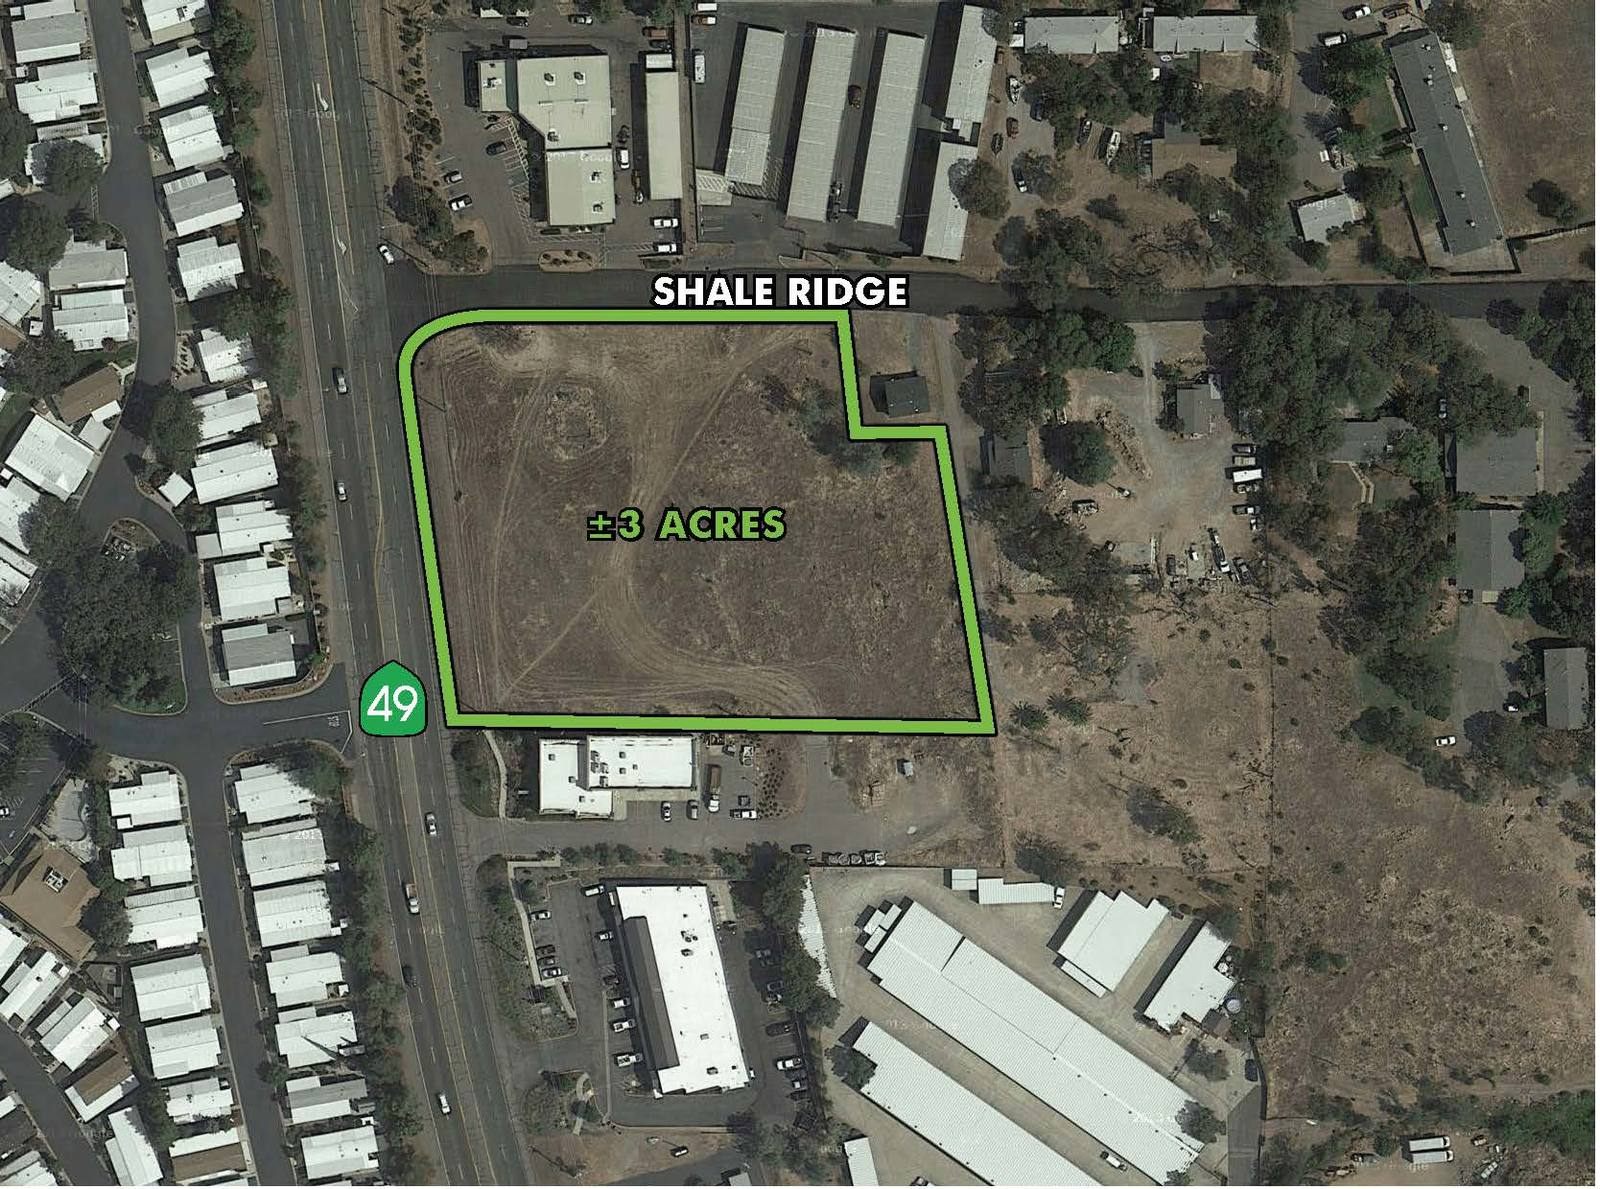 CBRE RetailRetail Land - 12020 Shale Ridge RdSEC Highway 49 & Shale Ridge Road  Photo